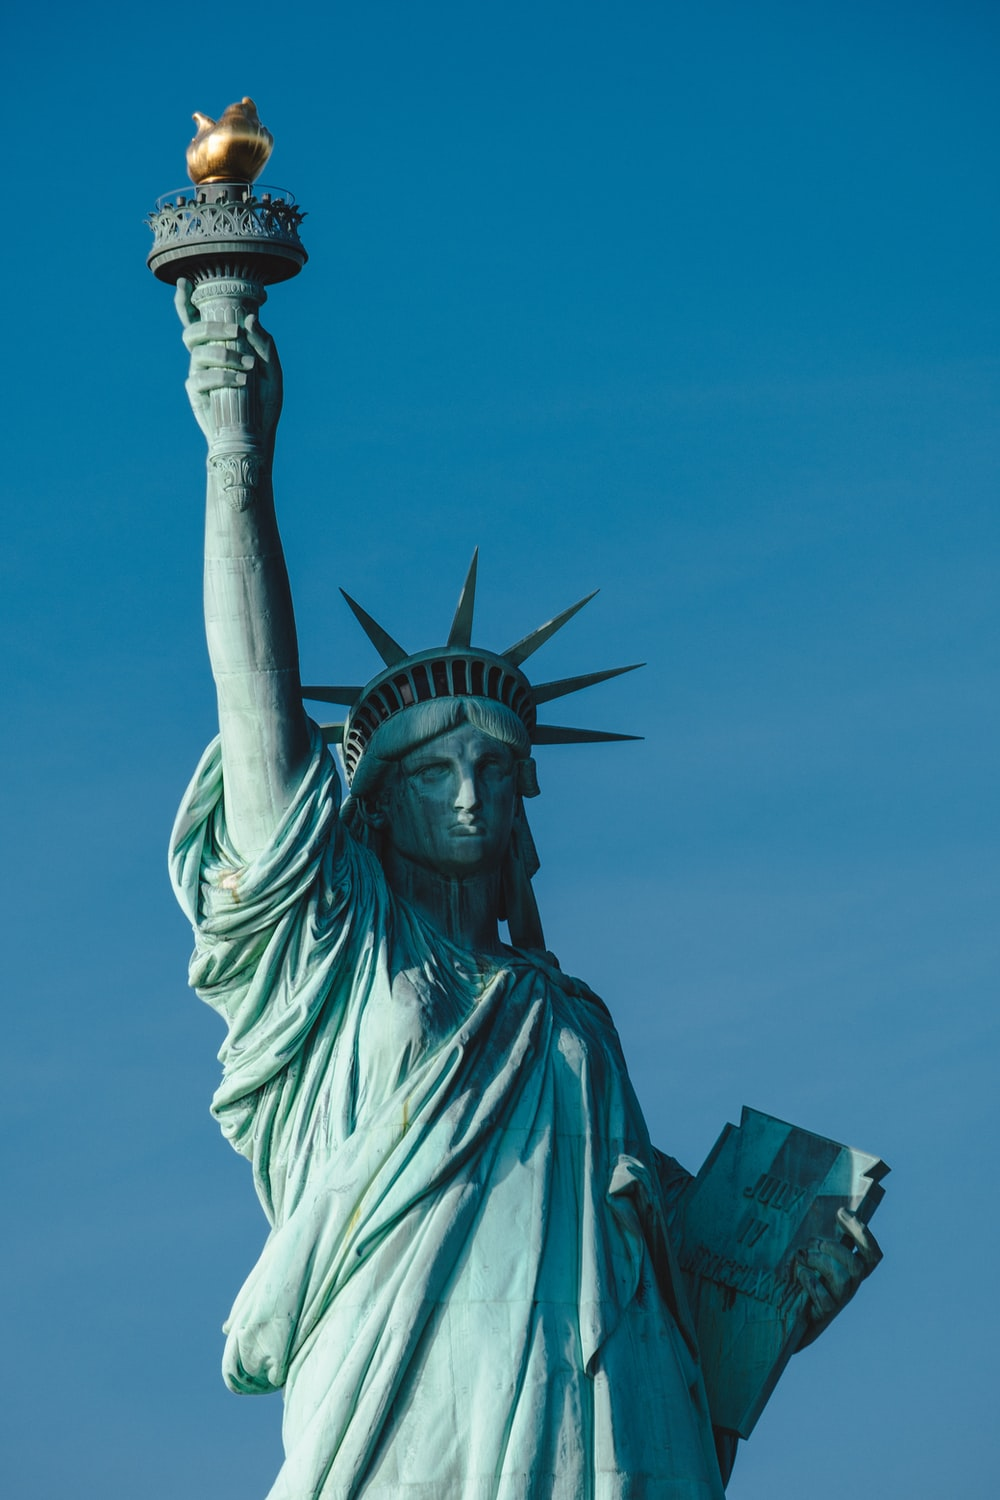 Statue of Liberty, New York during daytime